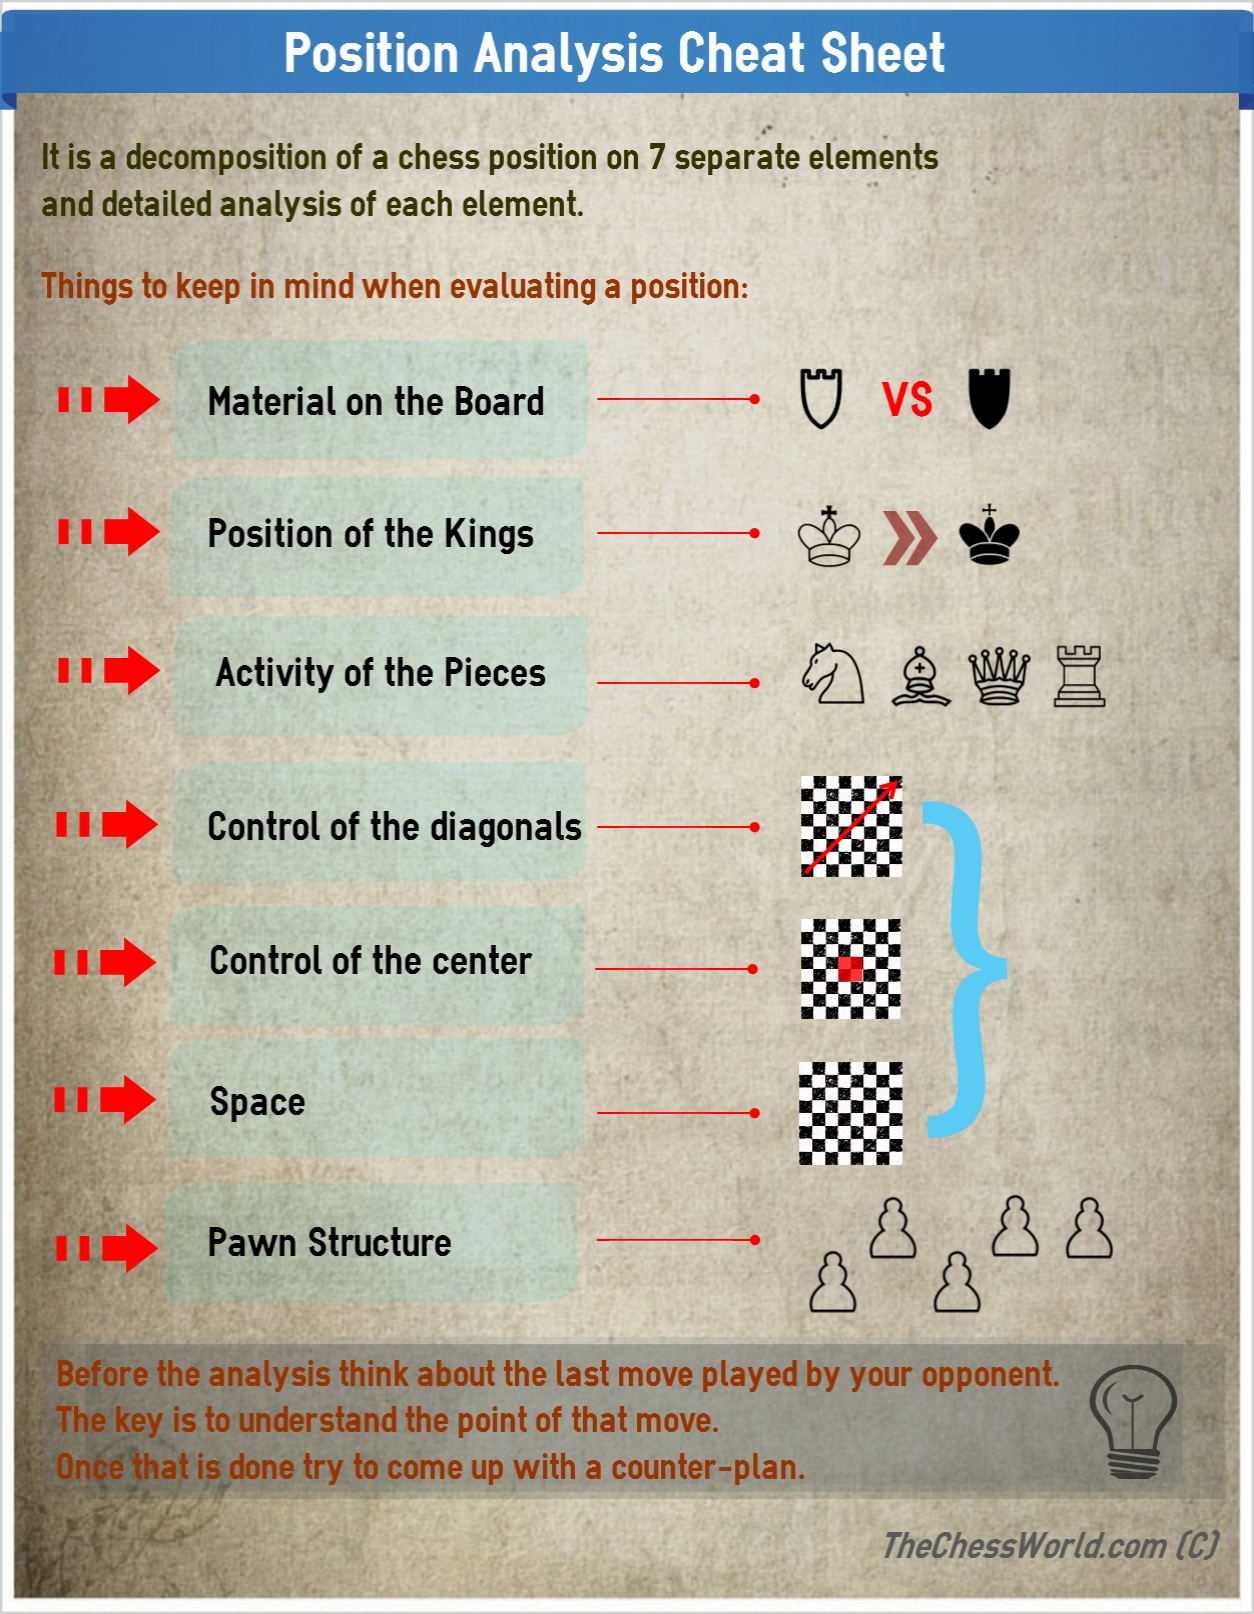 Chess Analysis 7 Most Important Factors In Chess Position Analysis